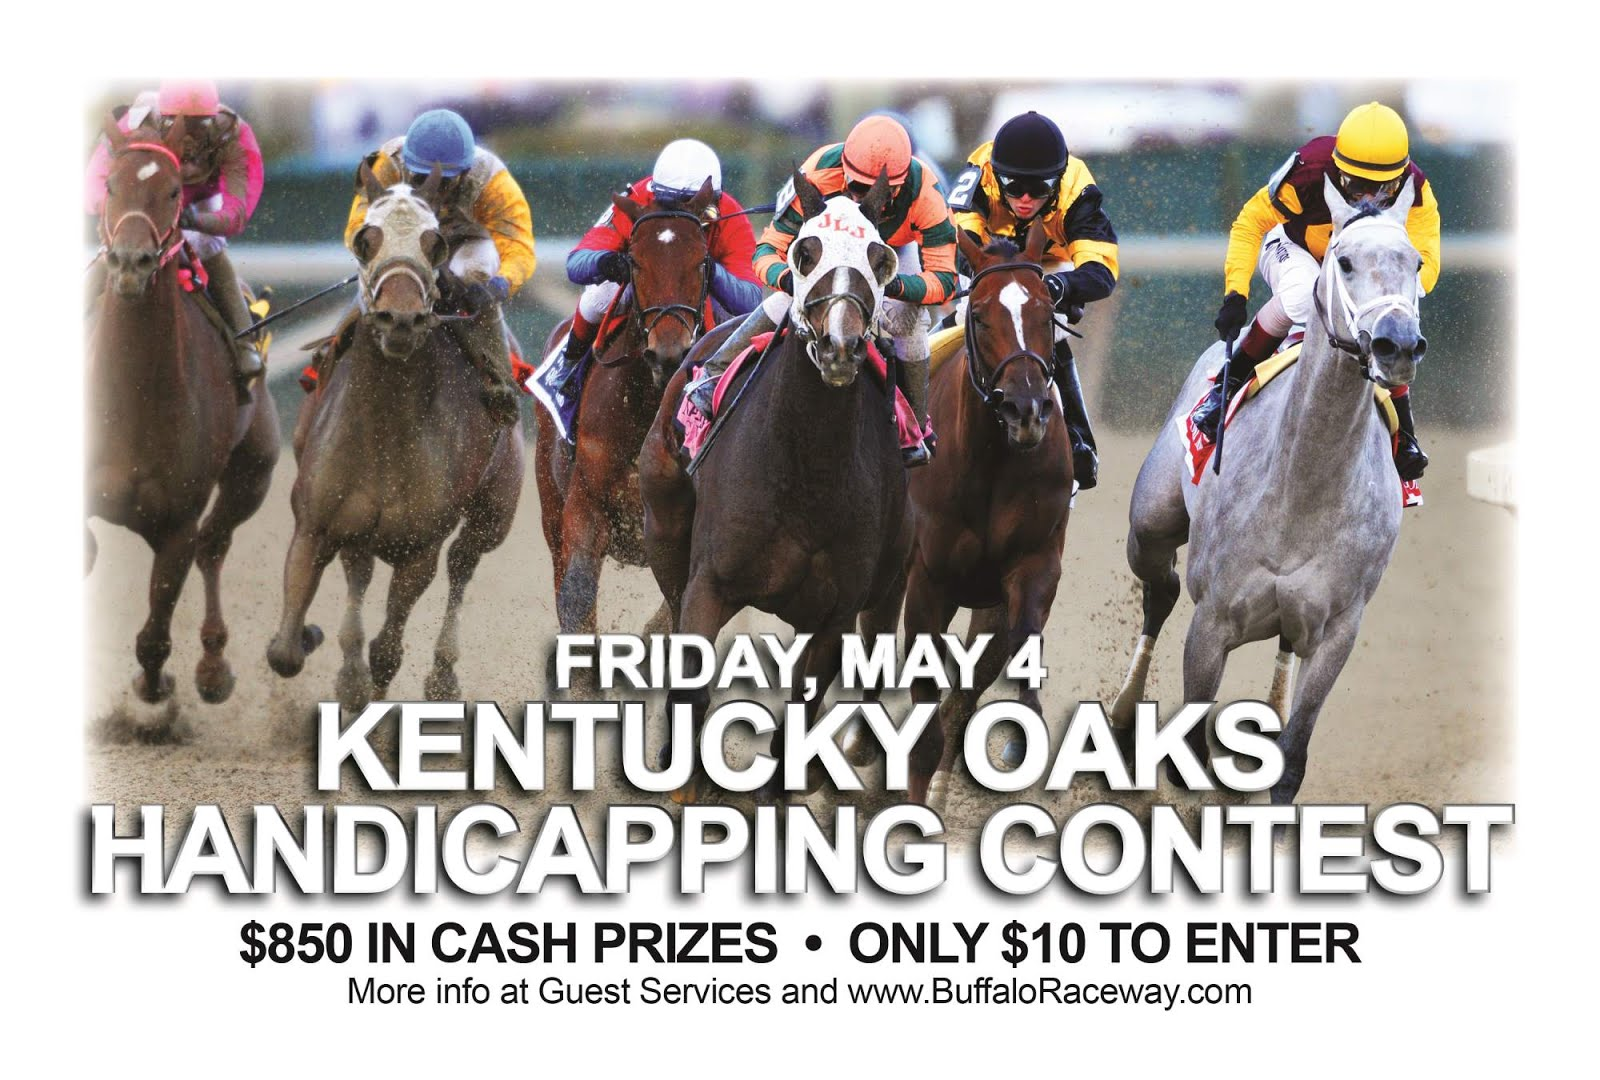 Thoroughbred Handicapping Contest